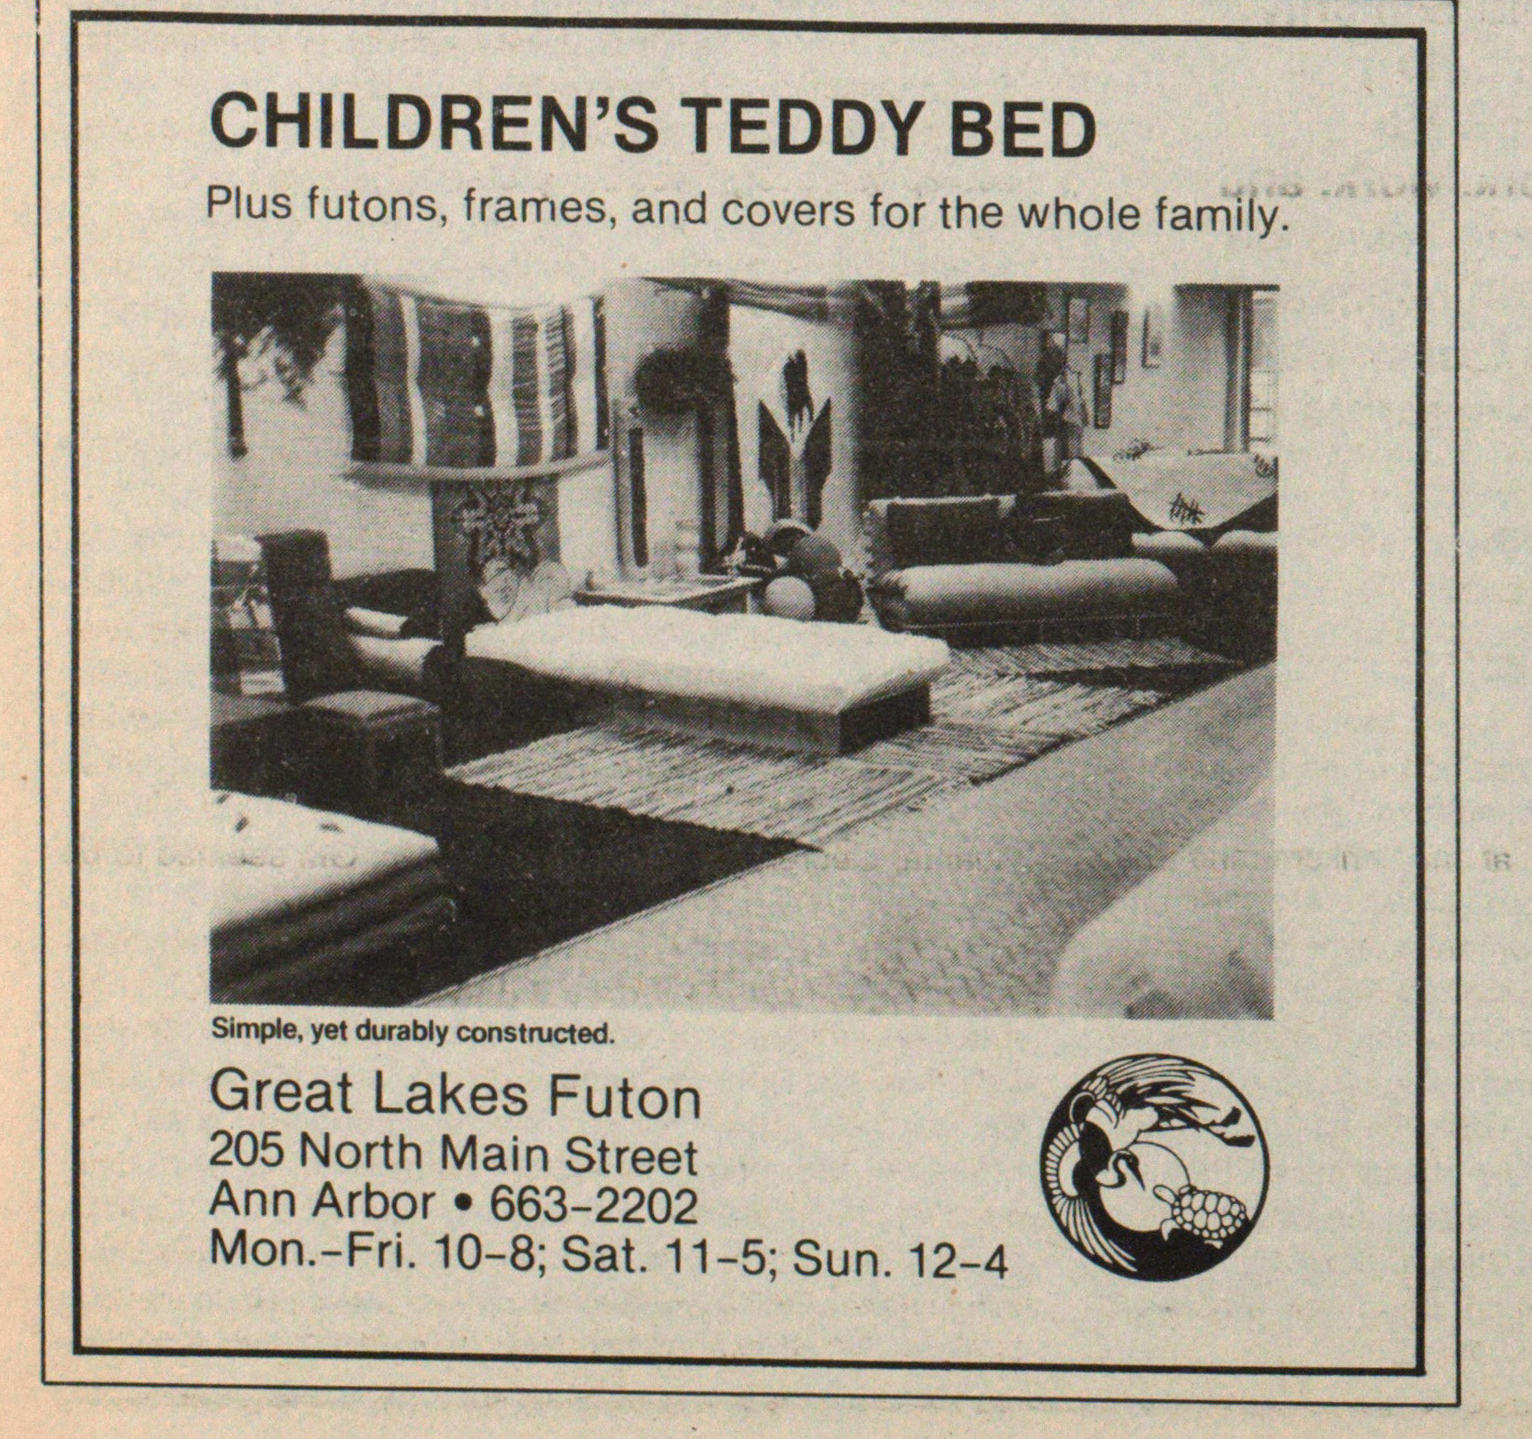 Children's Teddy Bed image